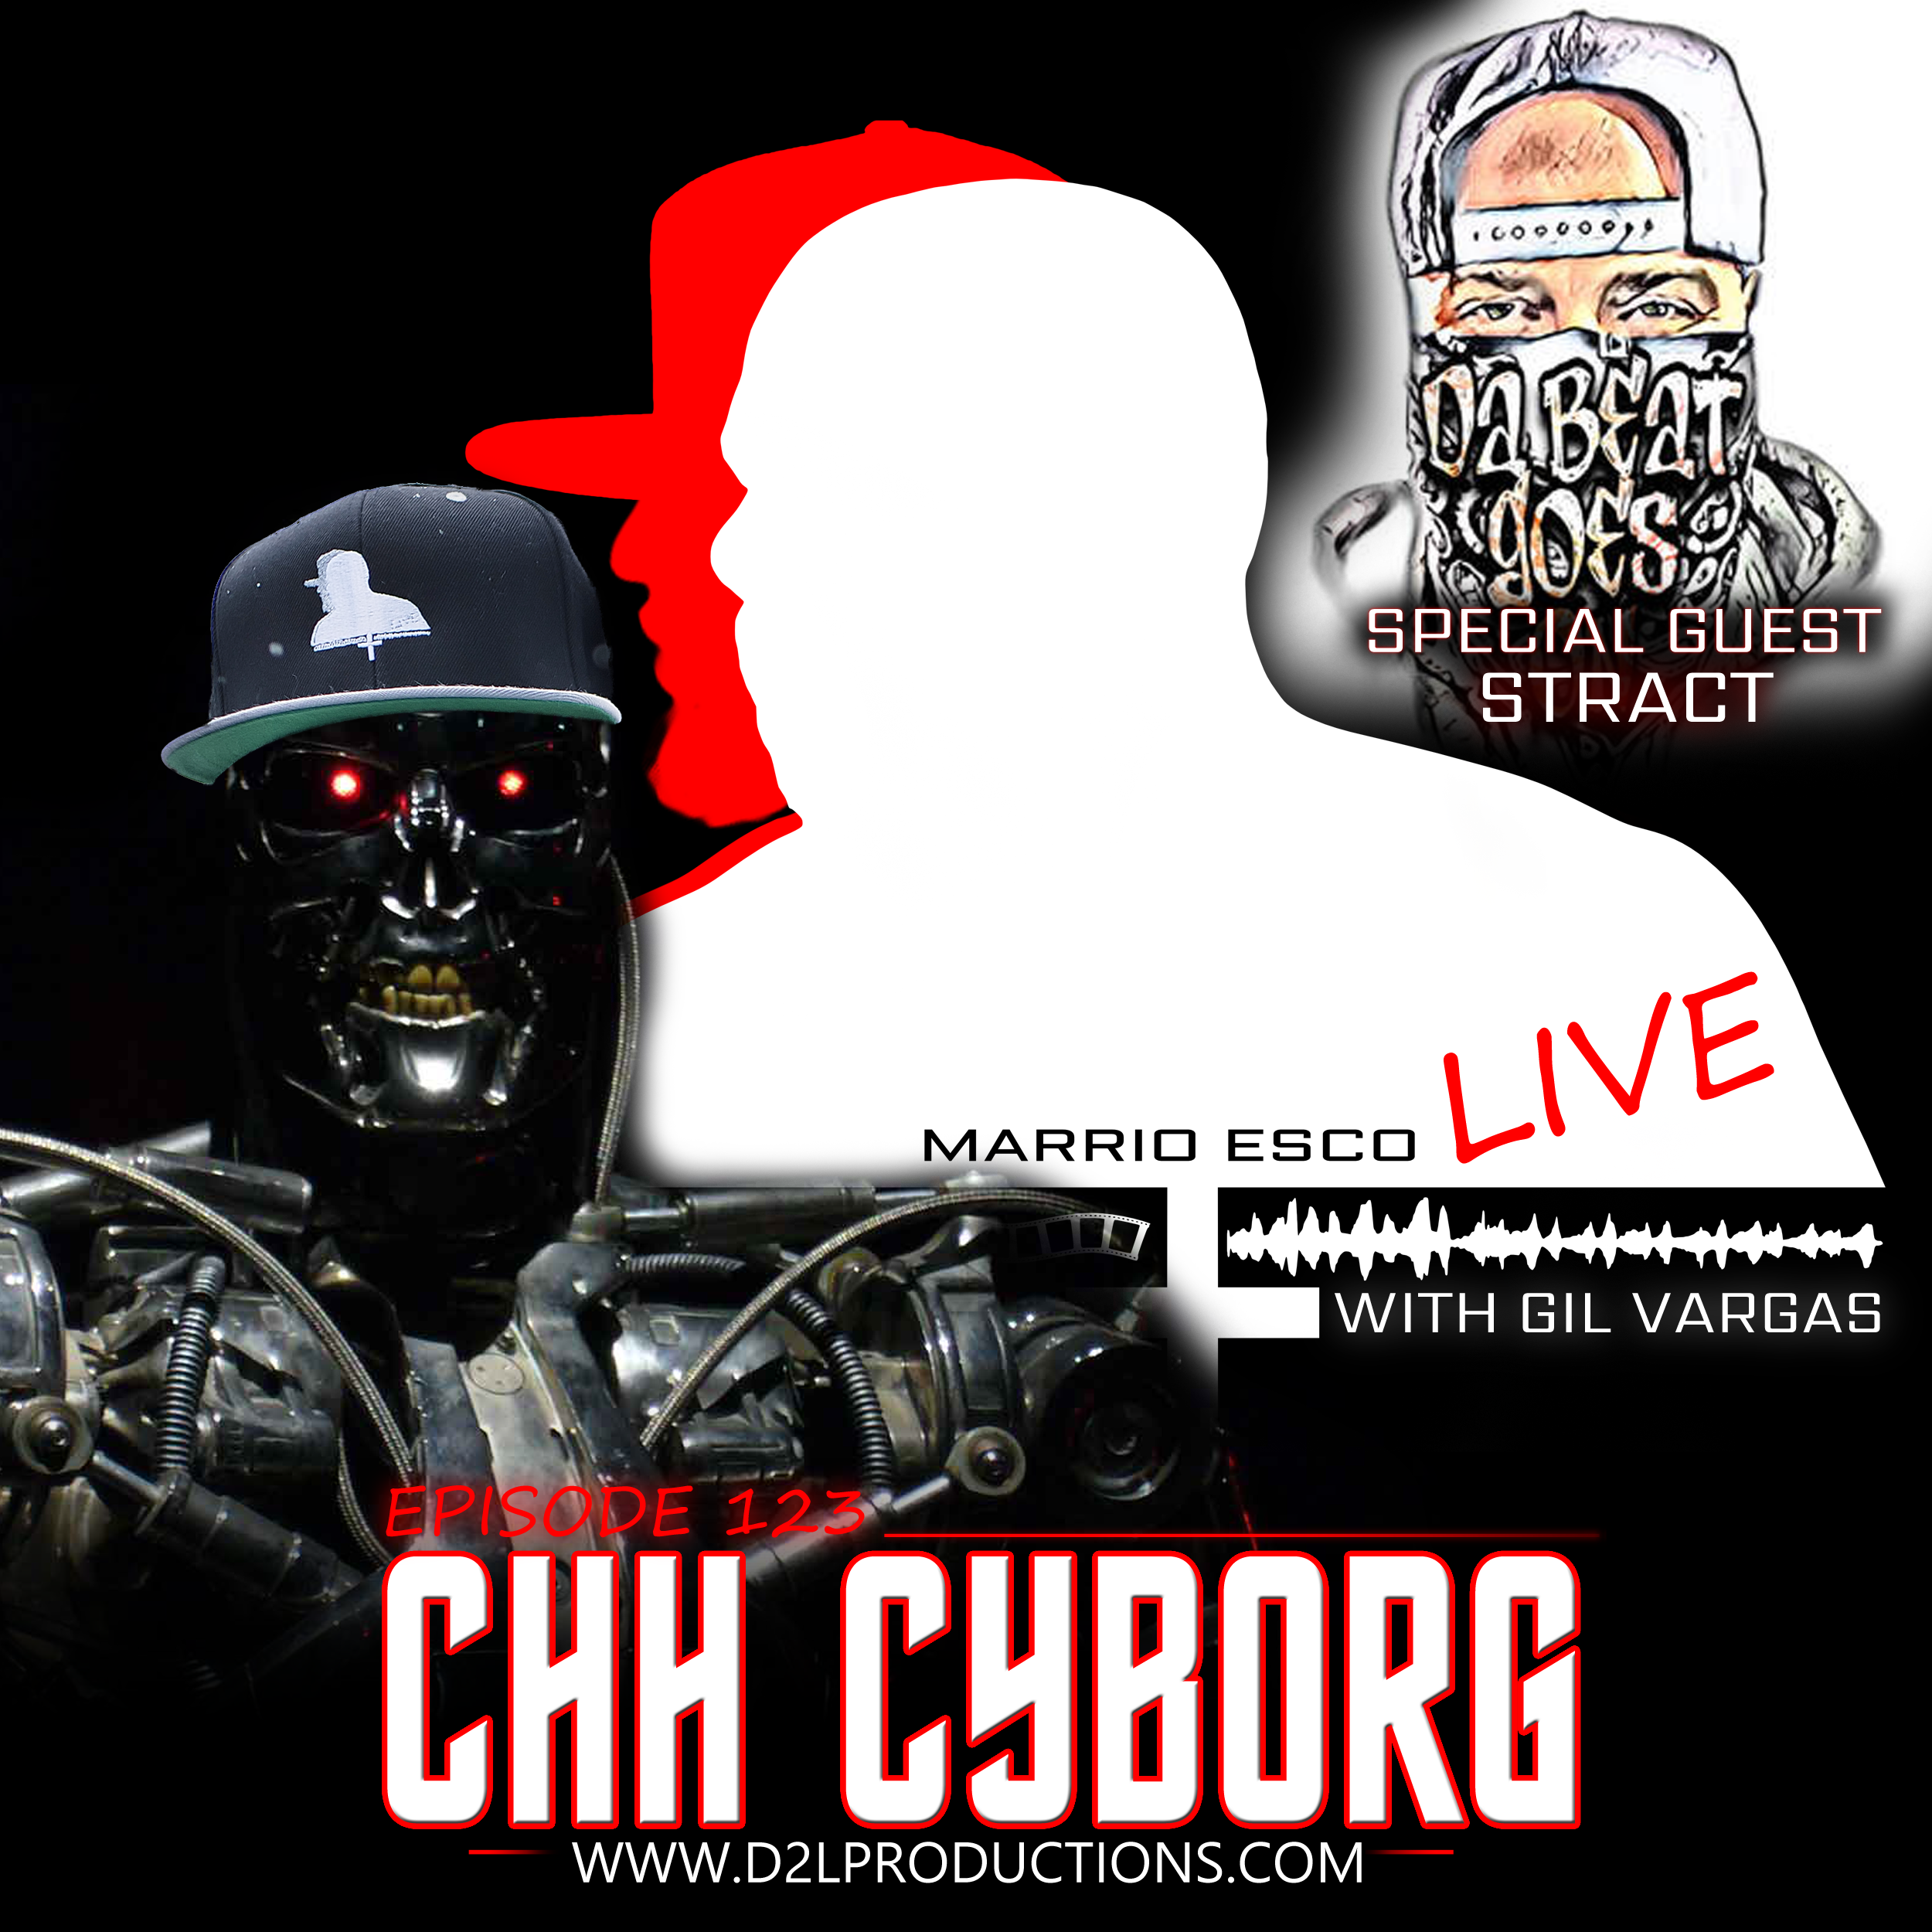 Art for CHH Cyborg by Marrio Esco, Gil Vargas, Stract